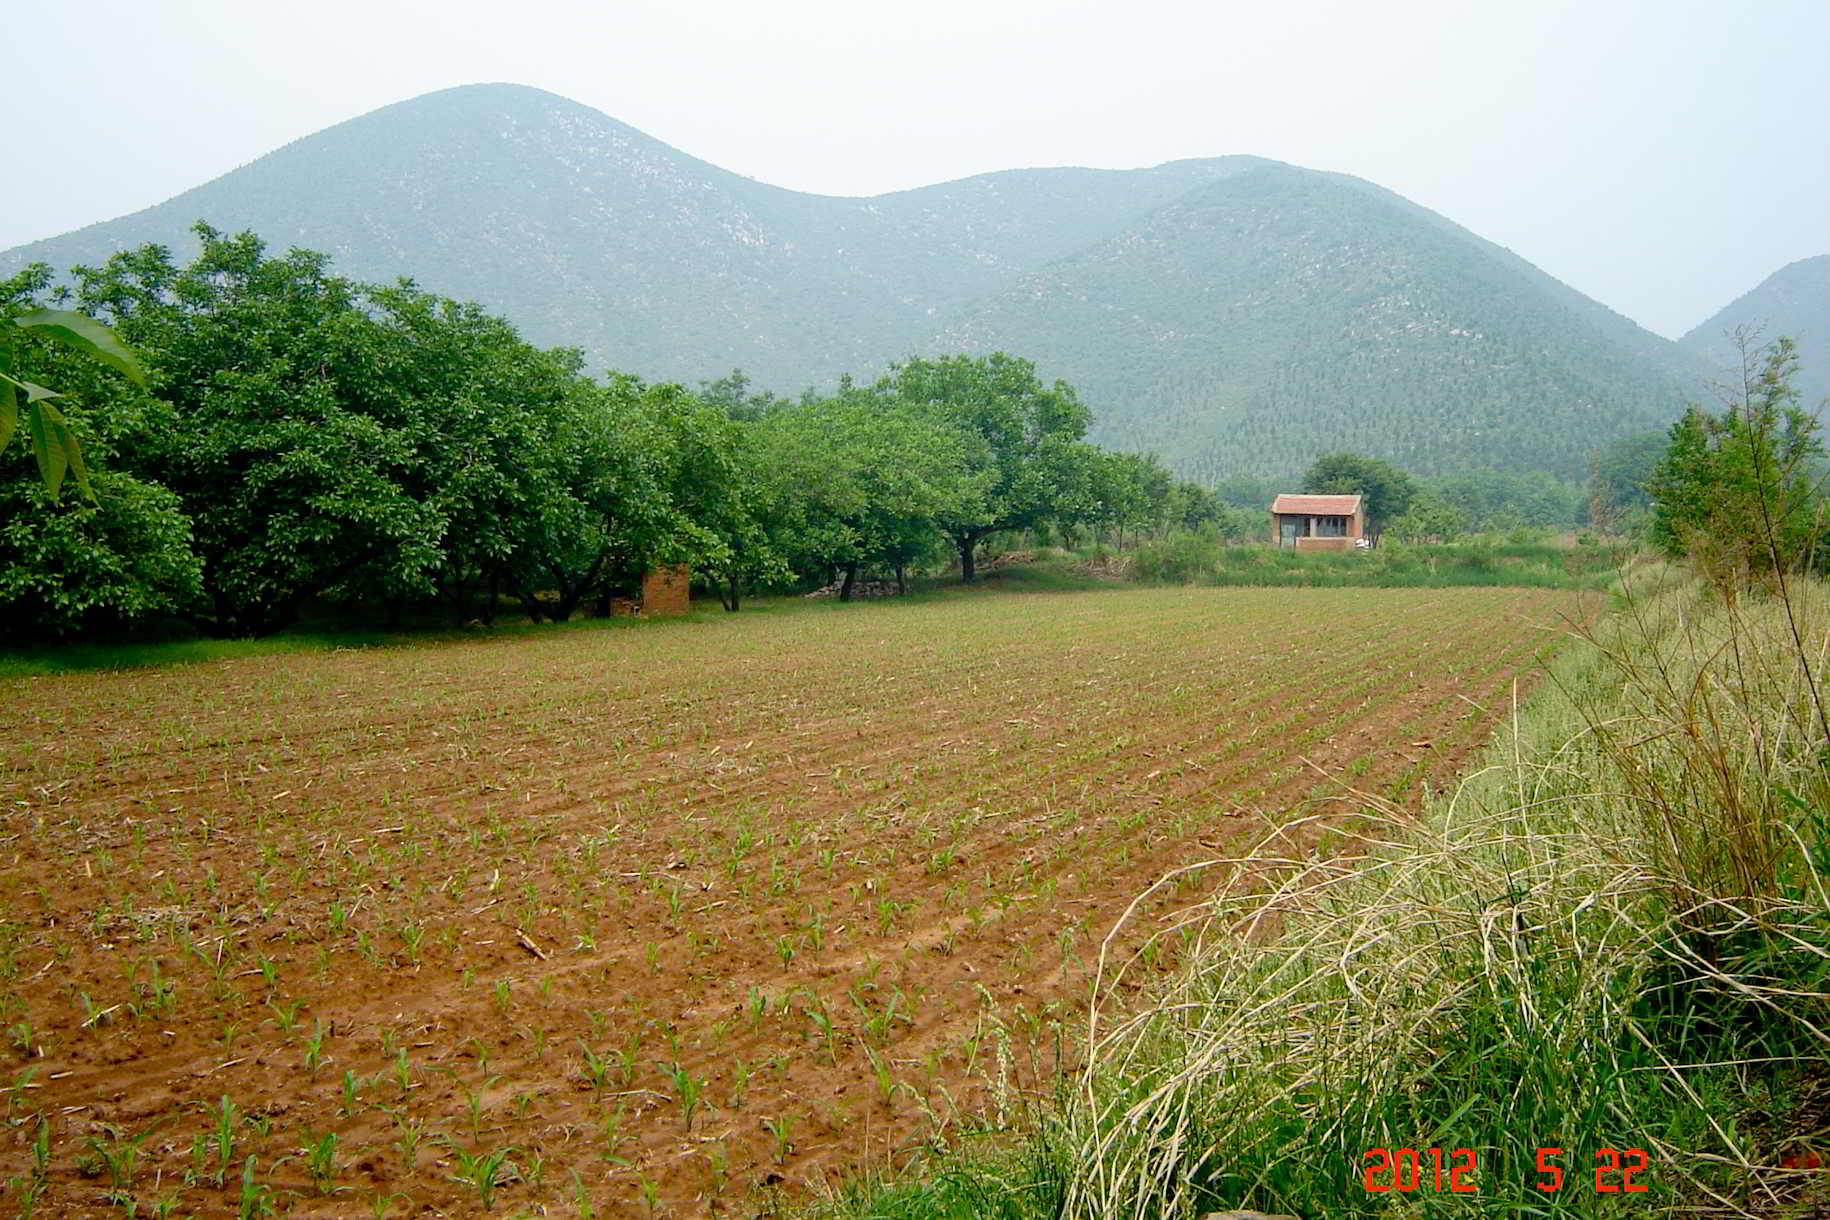 Heather's Beijing Farm Pic-1